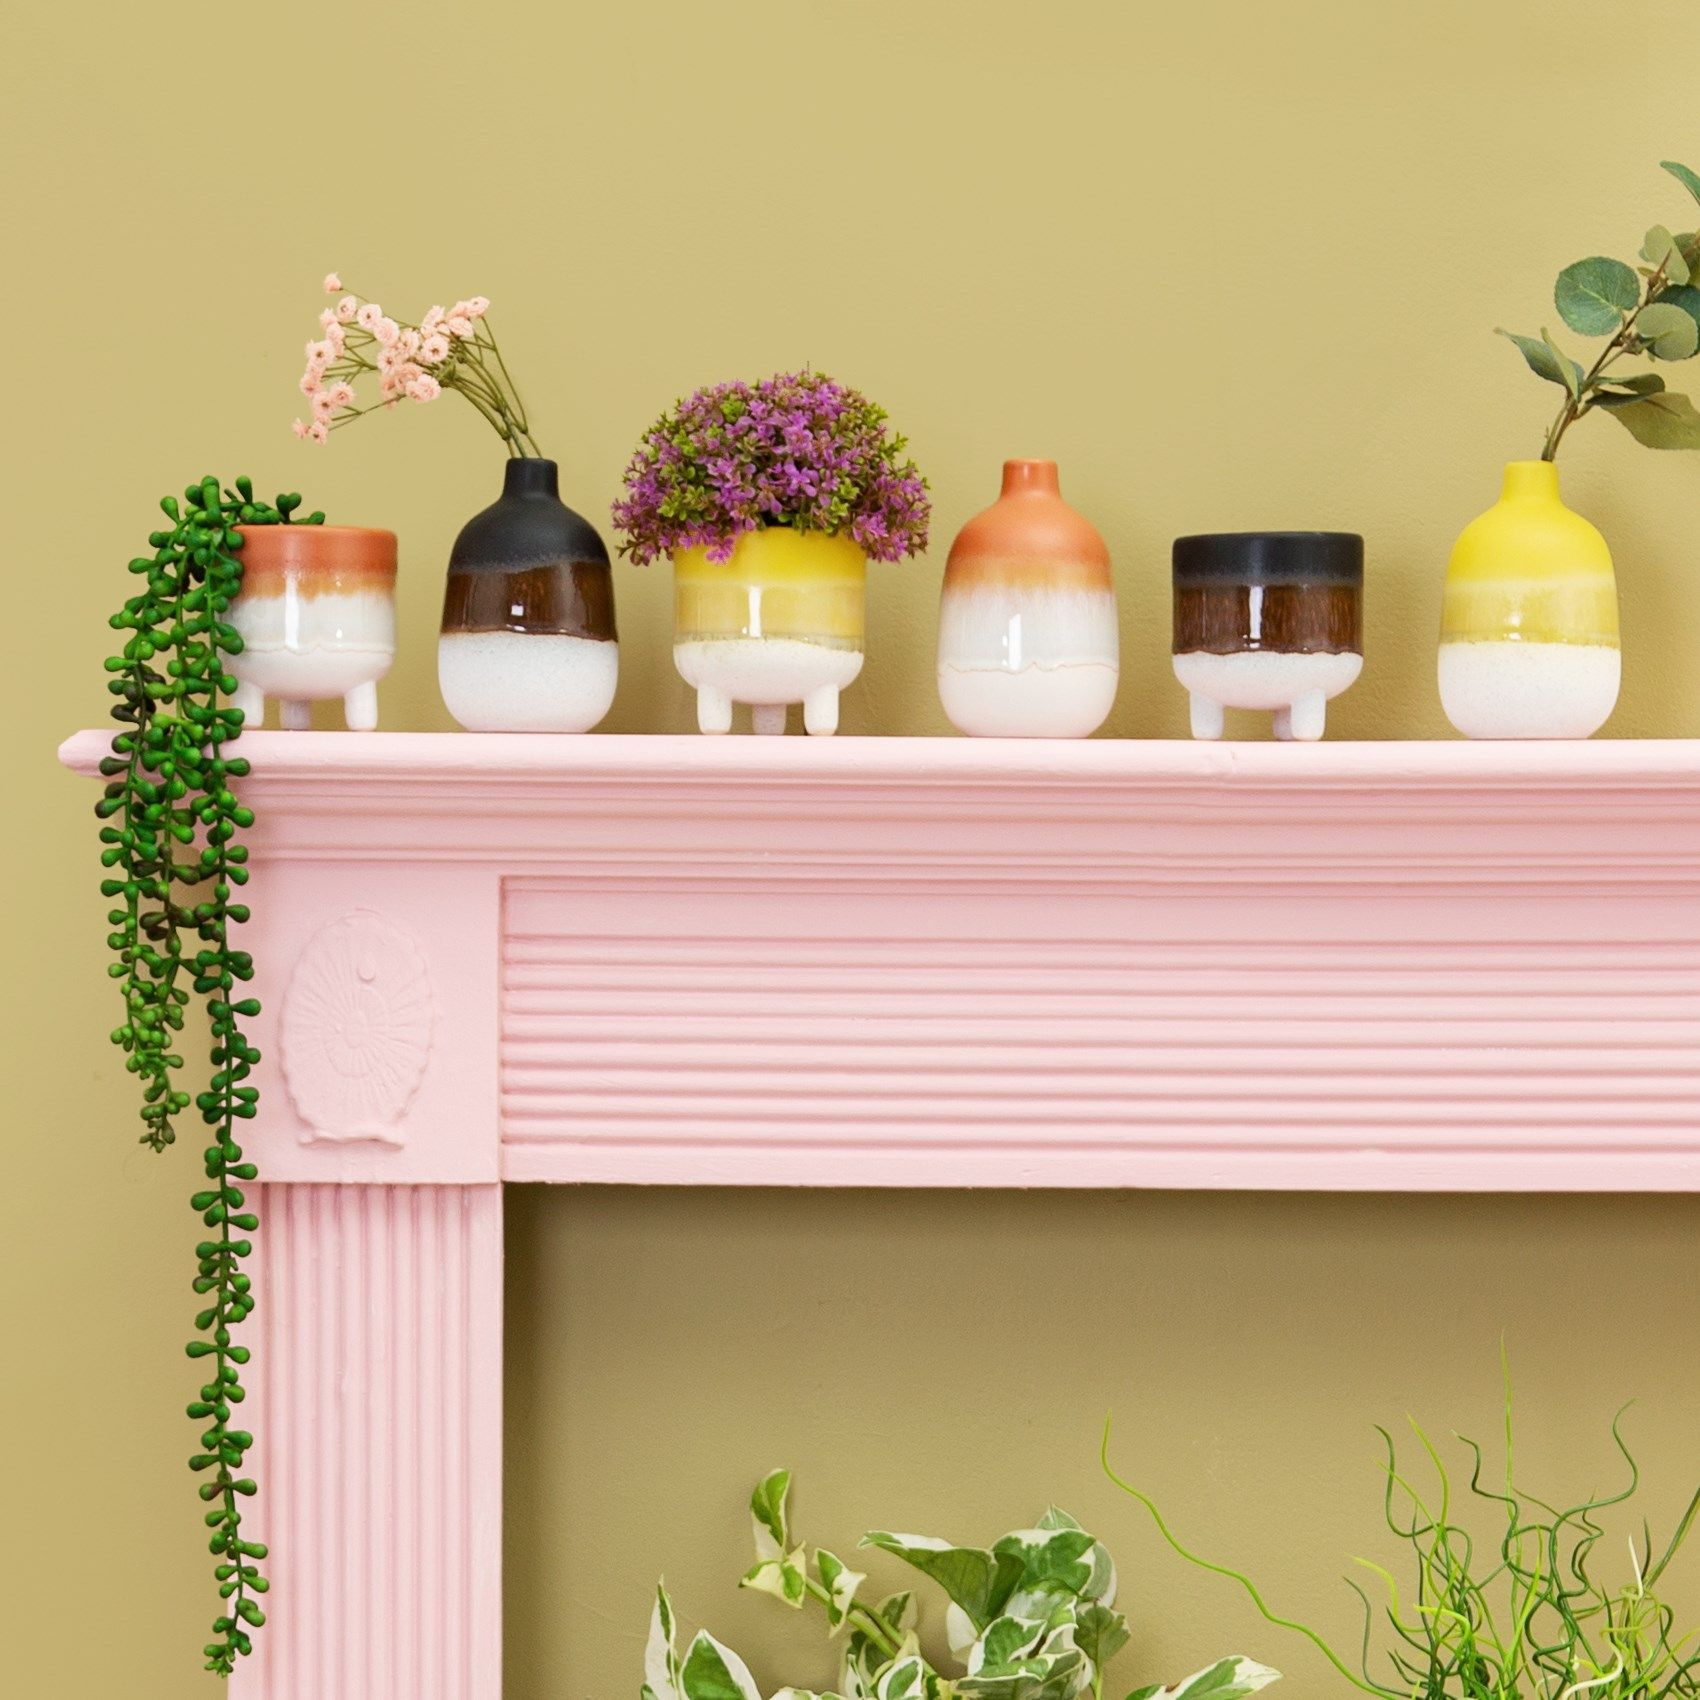 How To Nail The Mantelscaping Home Decor Trend - Lareira